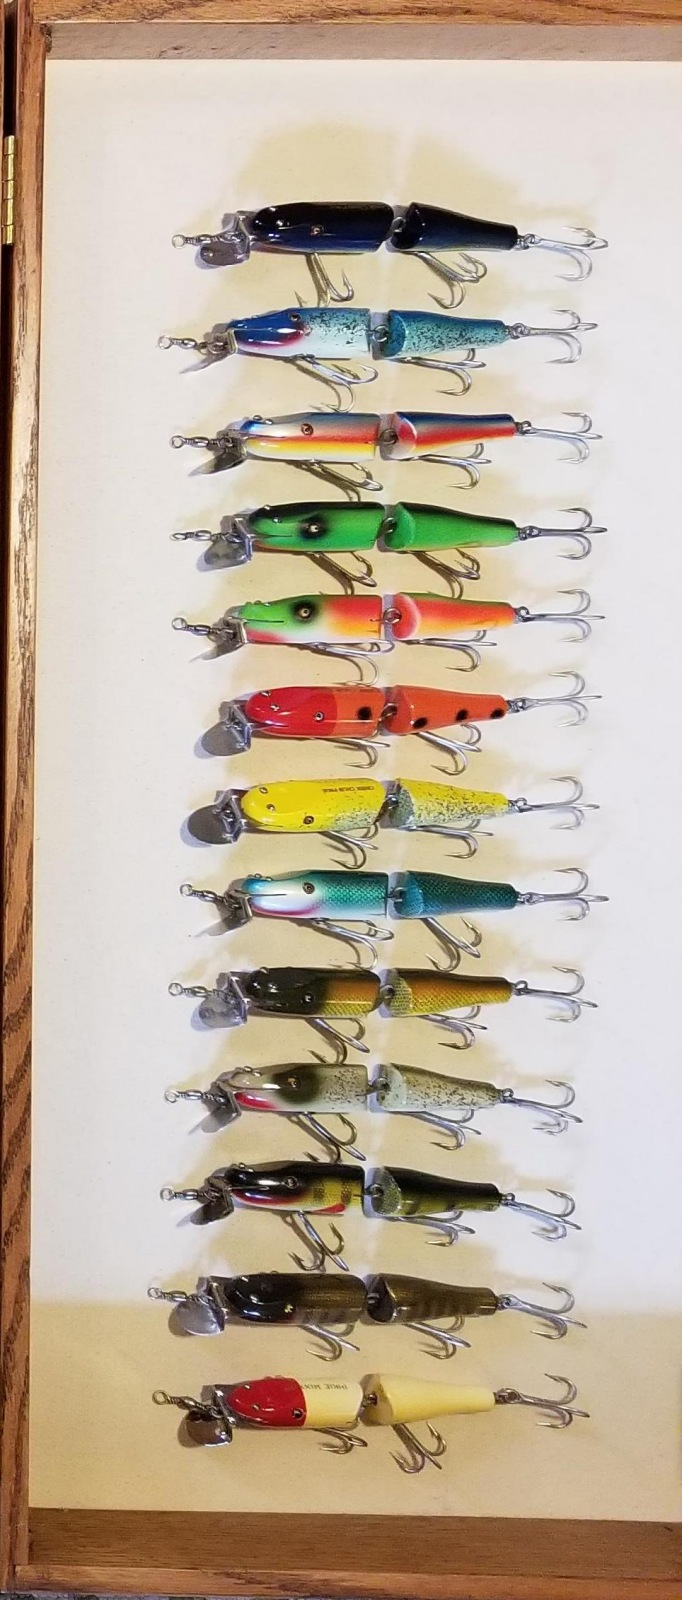 4-Snook Pikie Collection.jpg